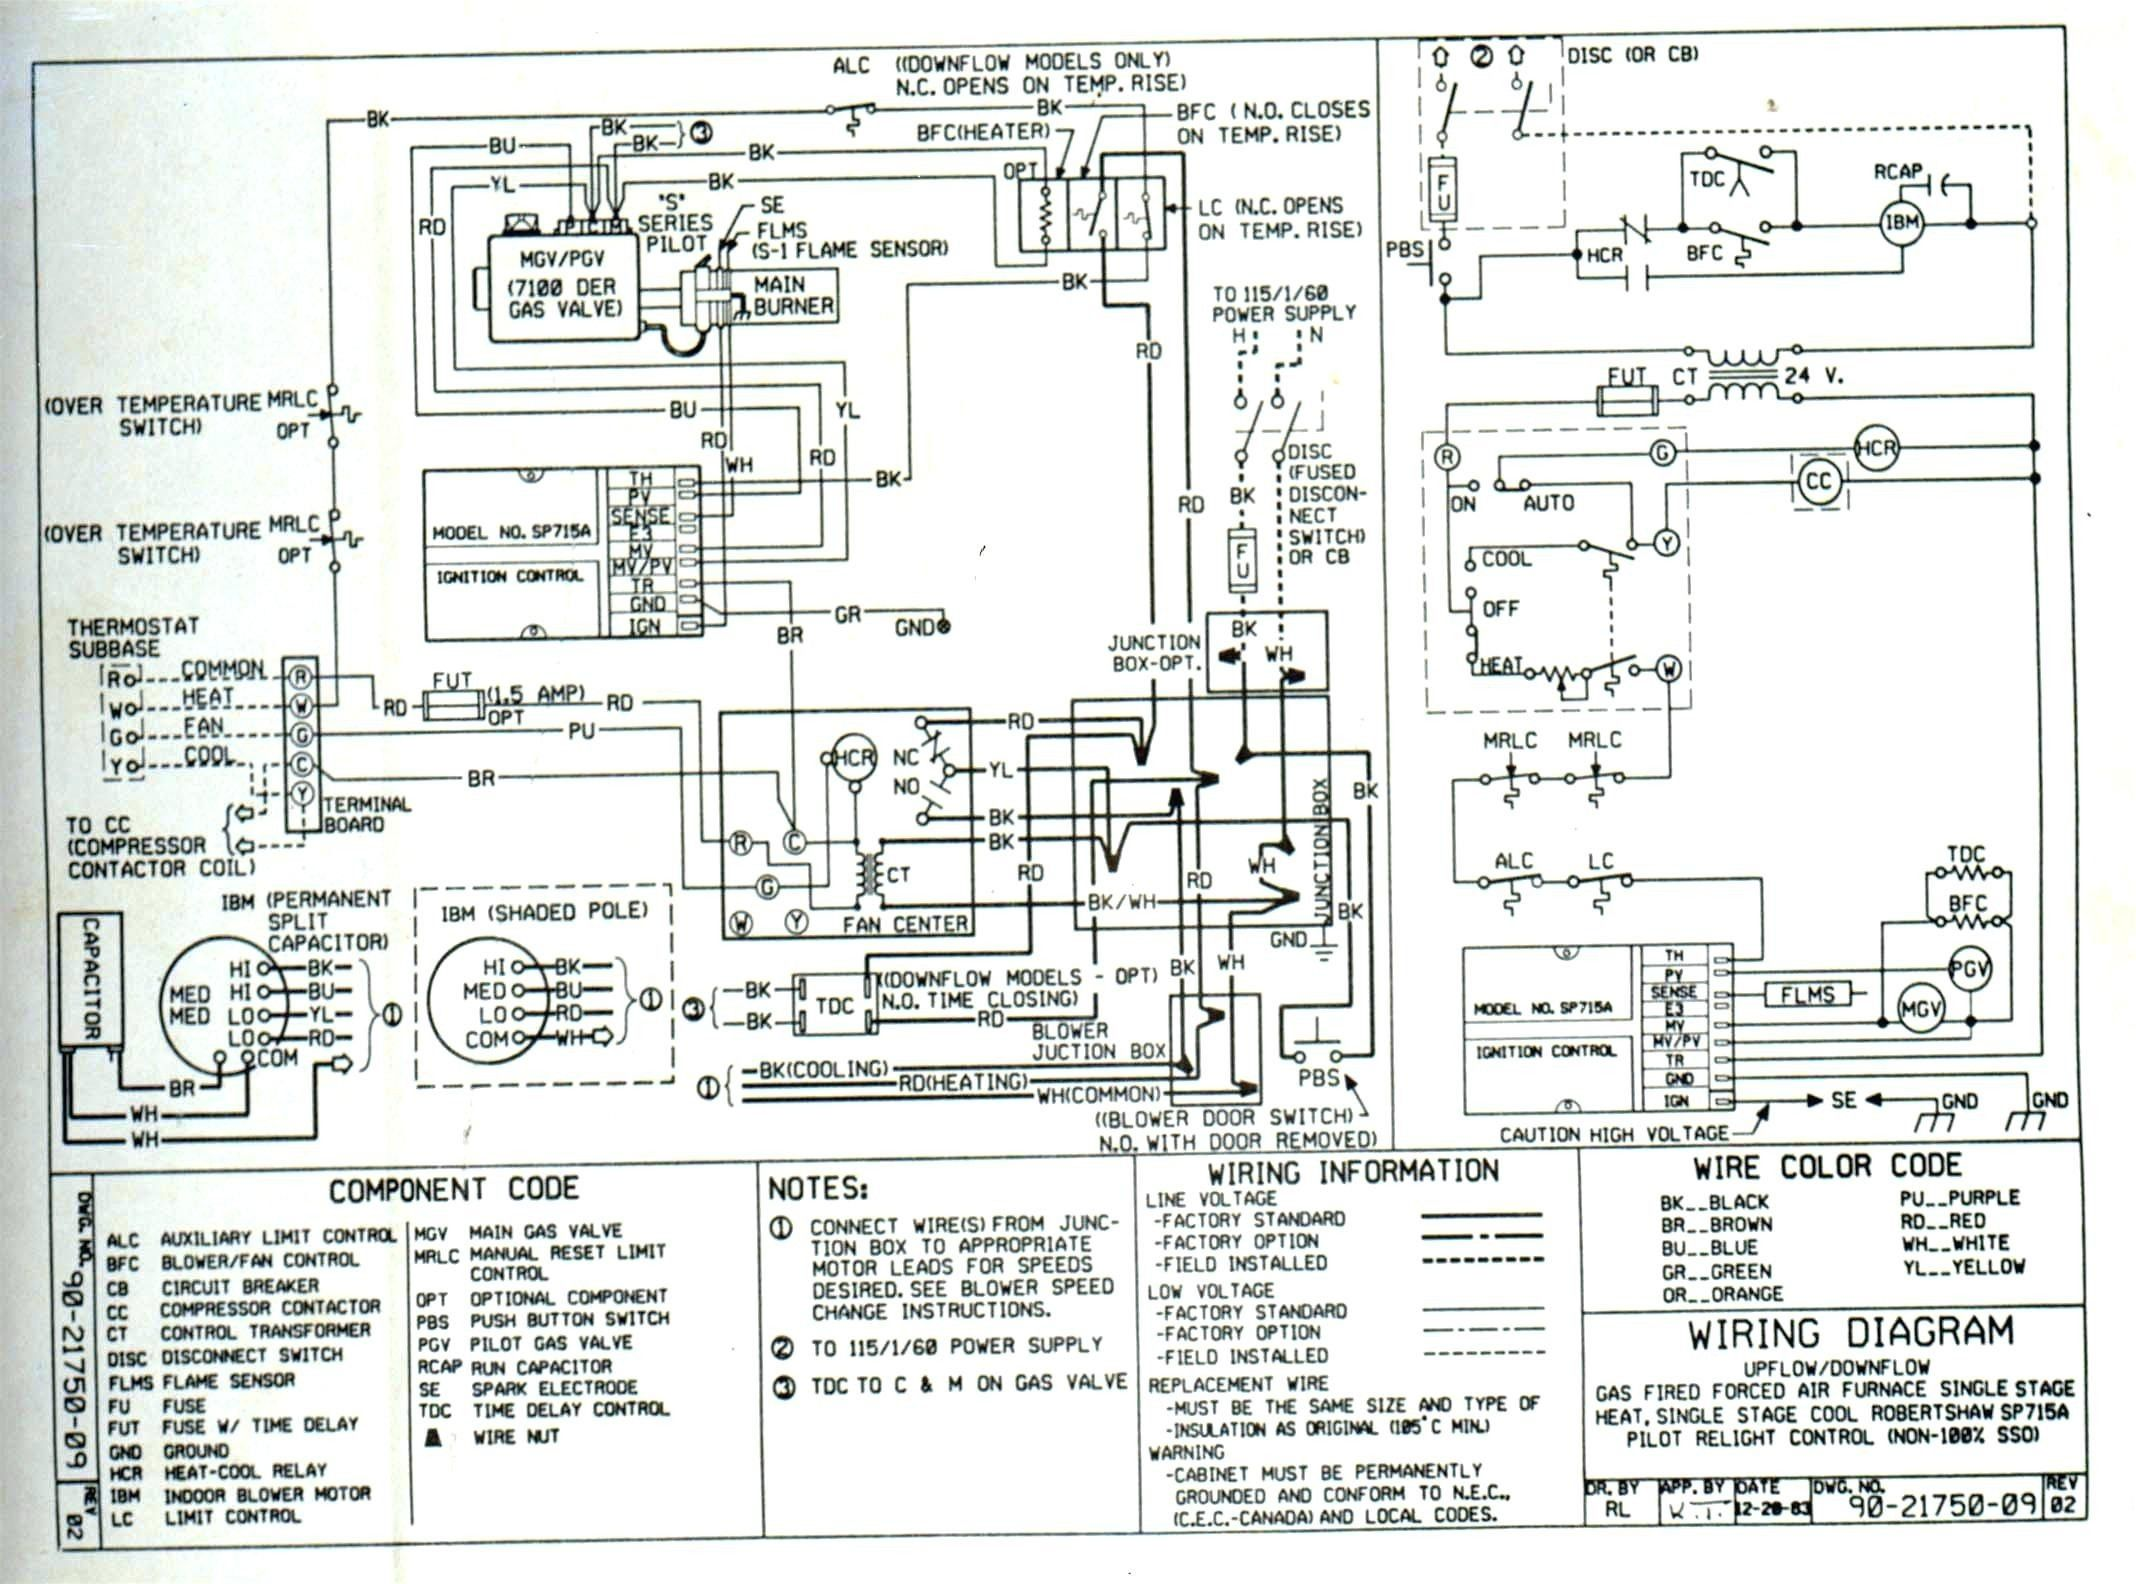 Trane Weathertron thermostat Wiring Diagram Elegant in